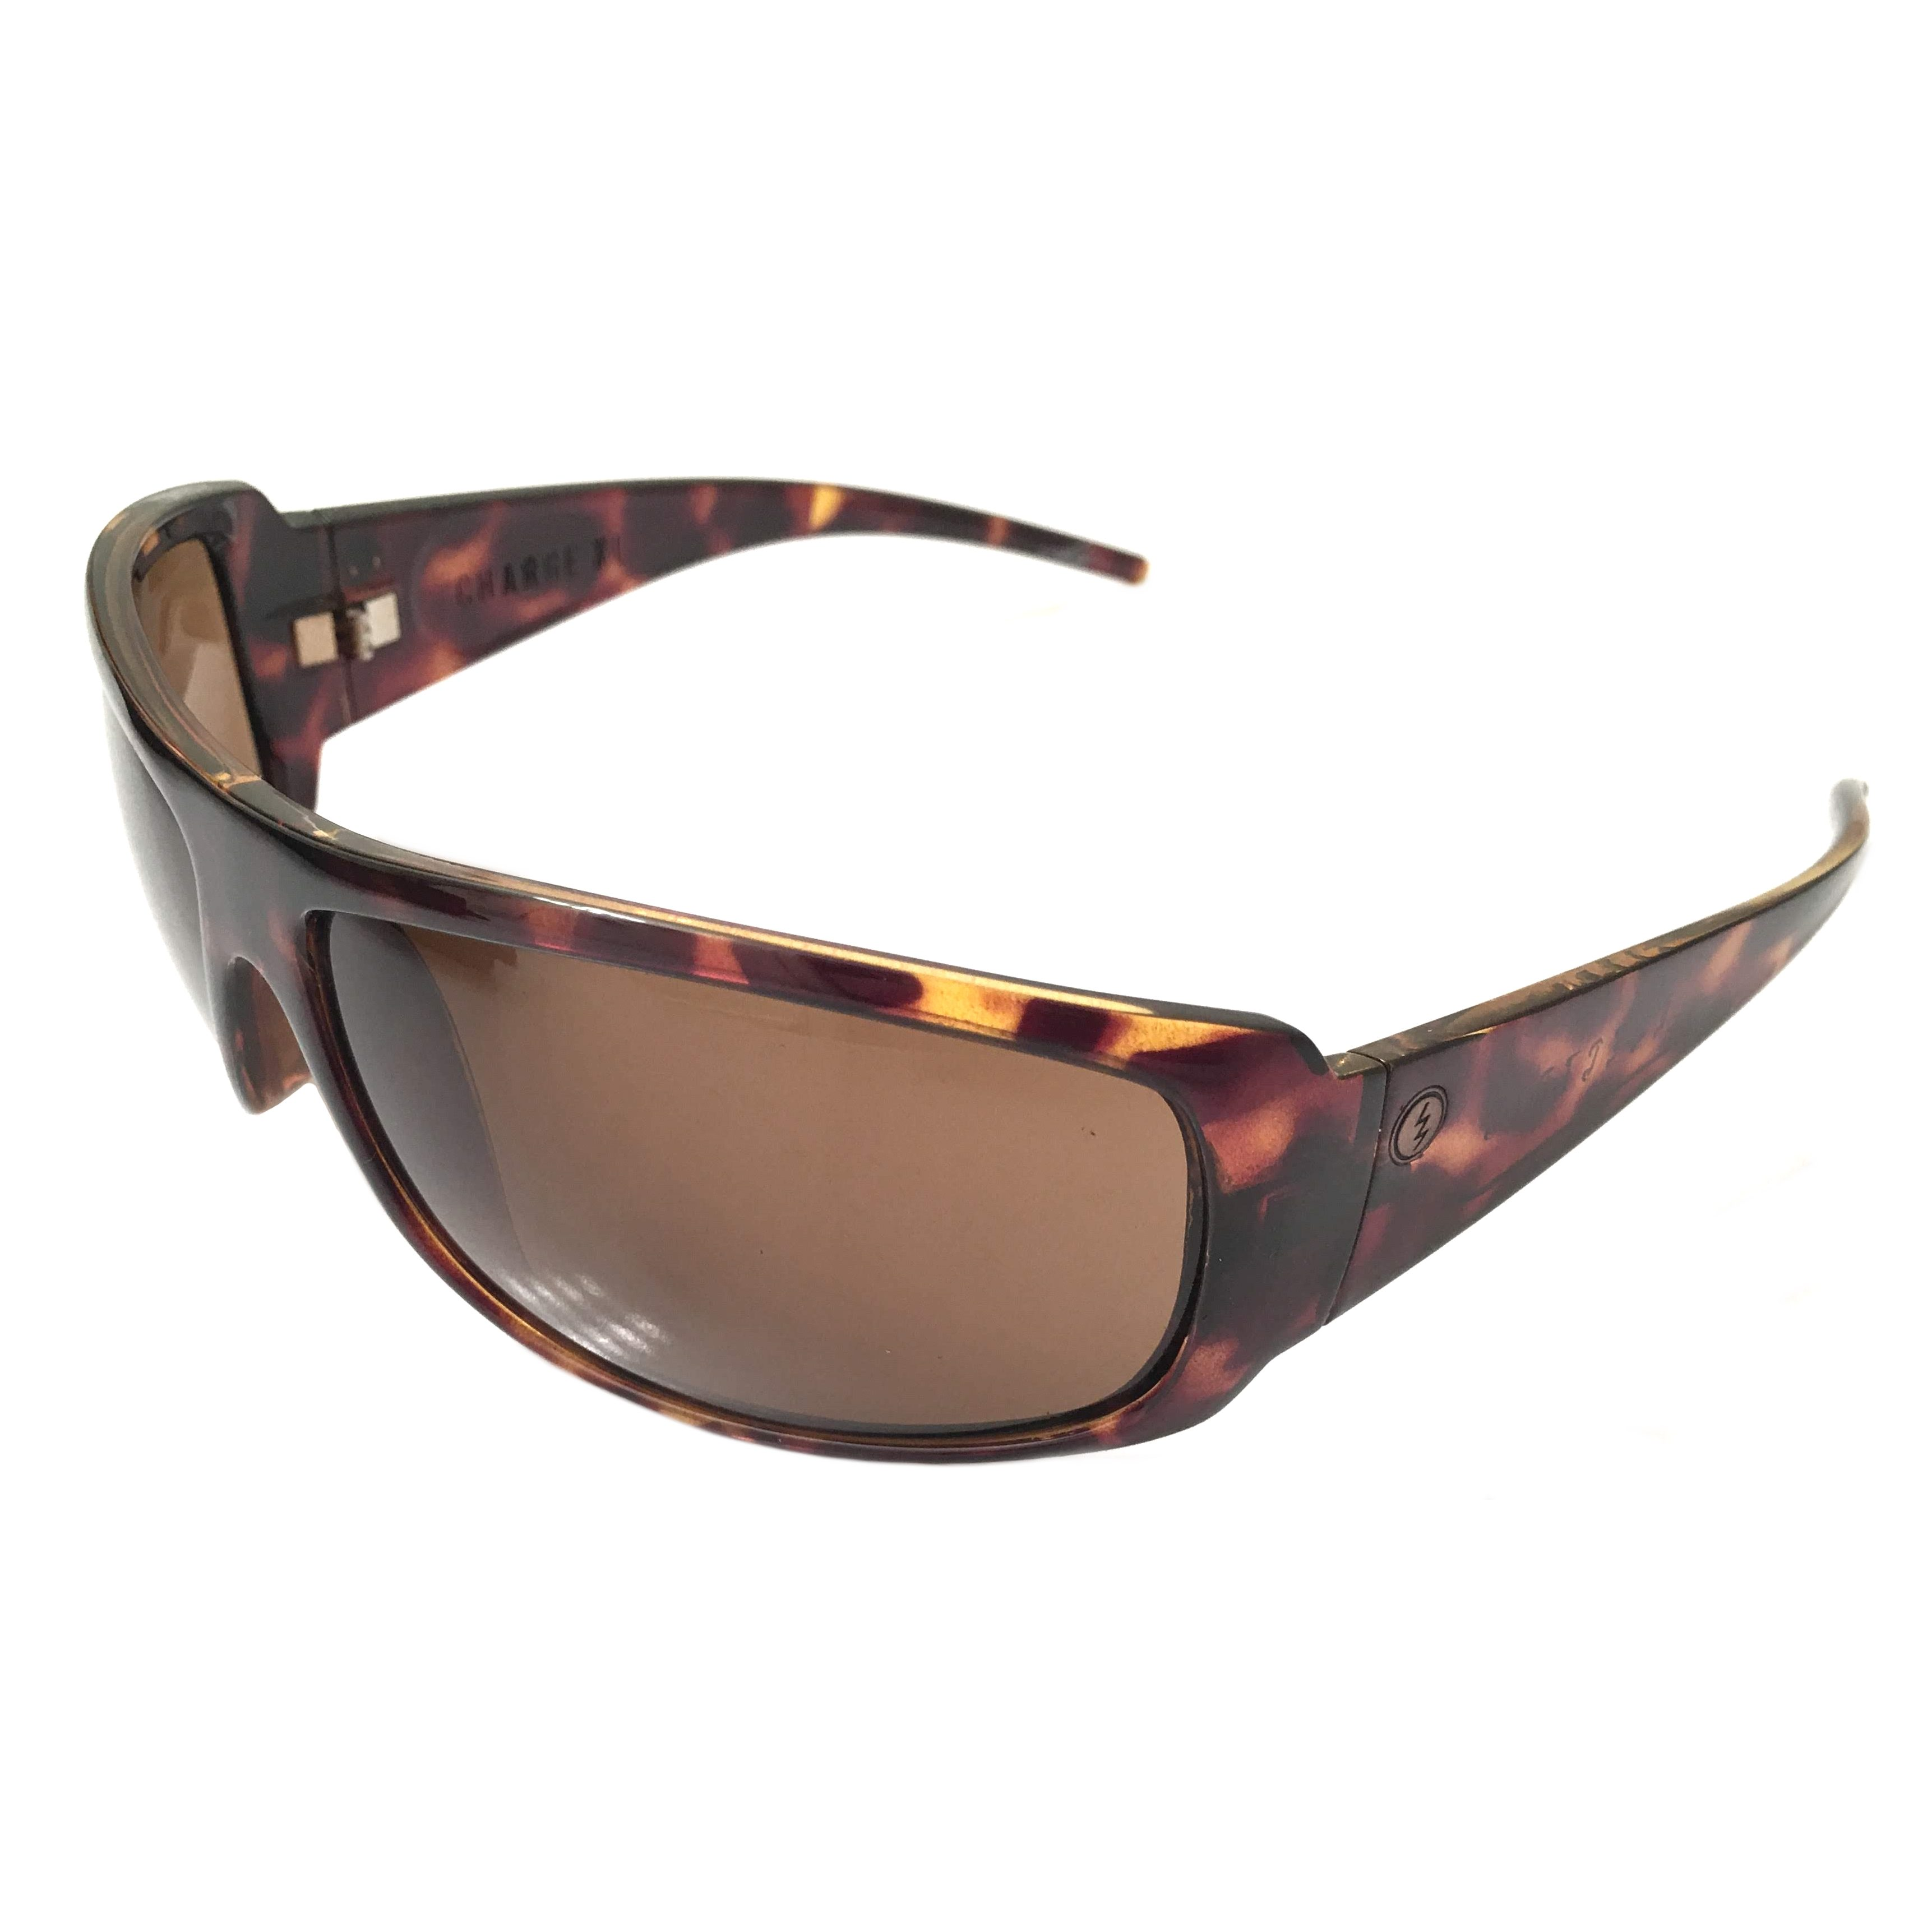 Electric Visual Charge Xl Sunglasses Tortoise Shell